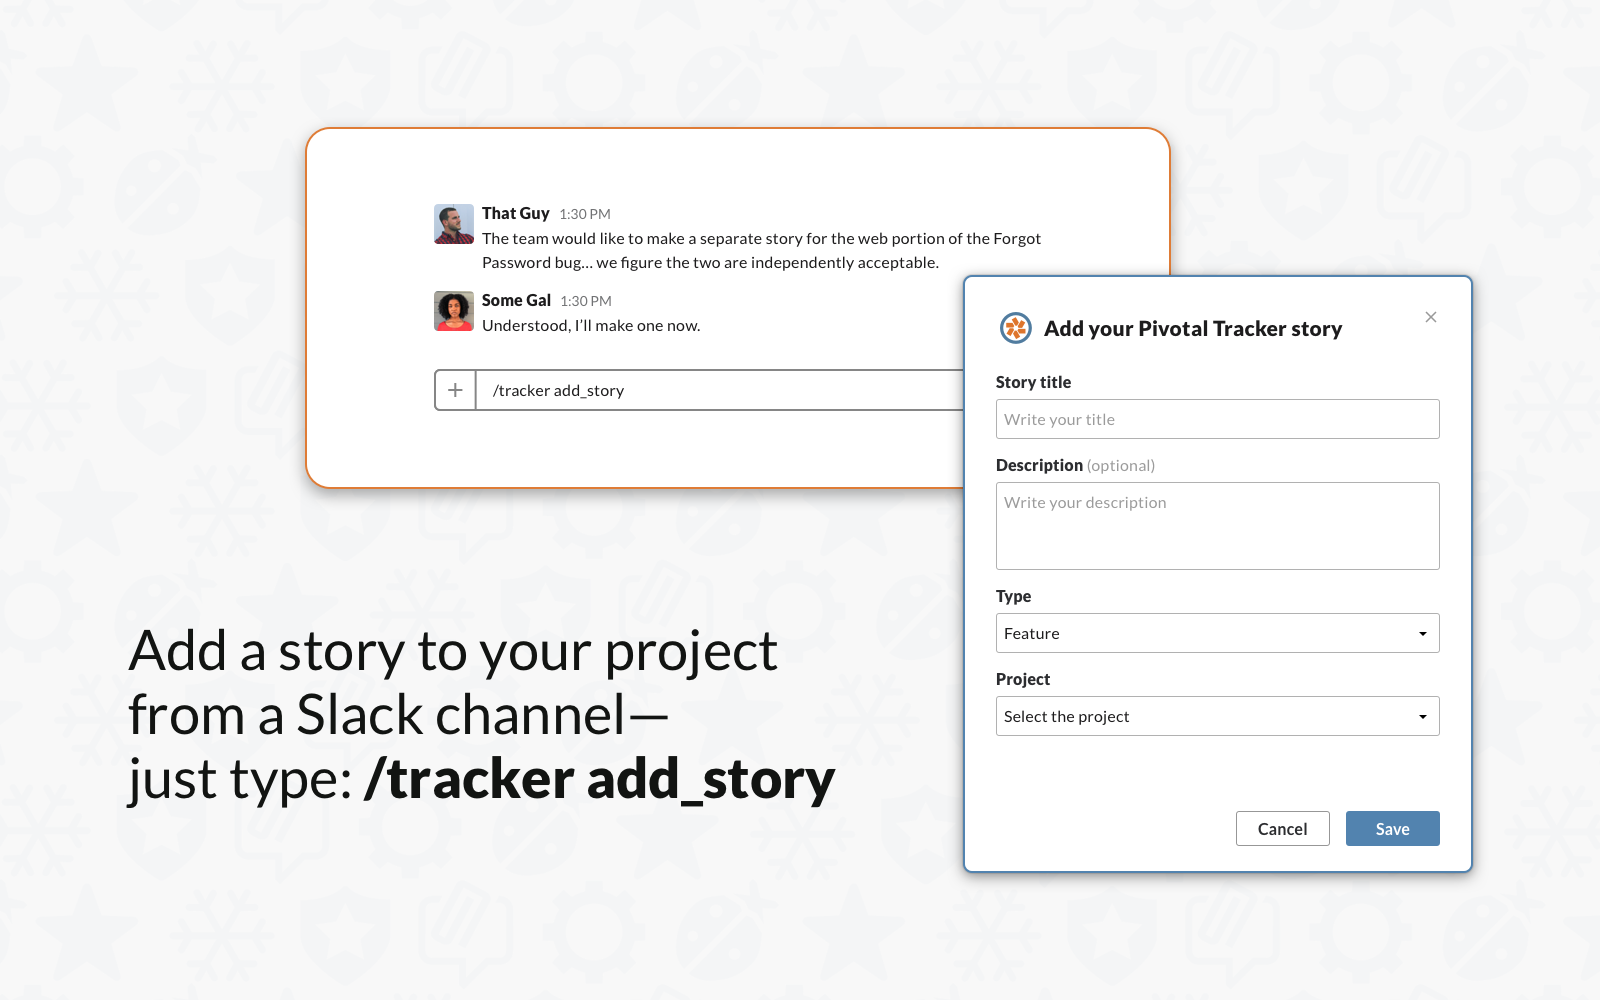 Add a story via Slack